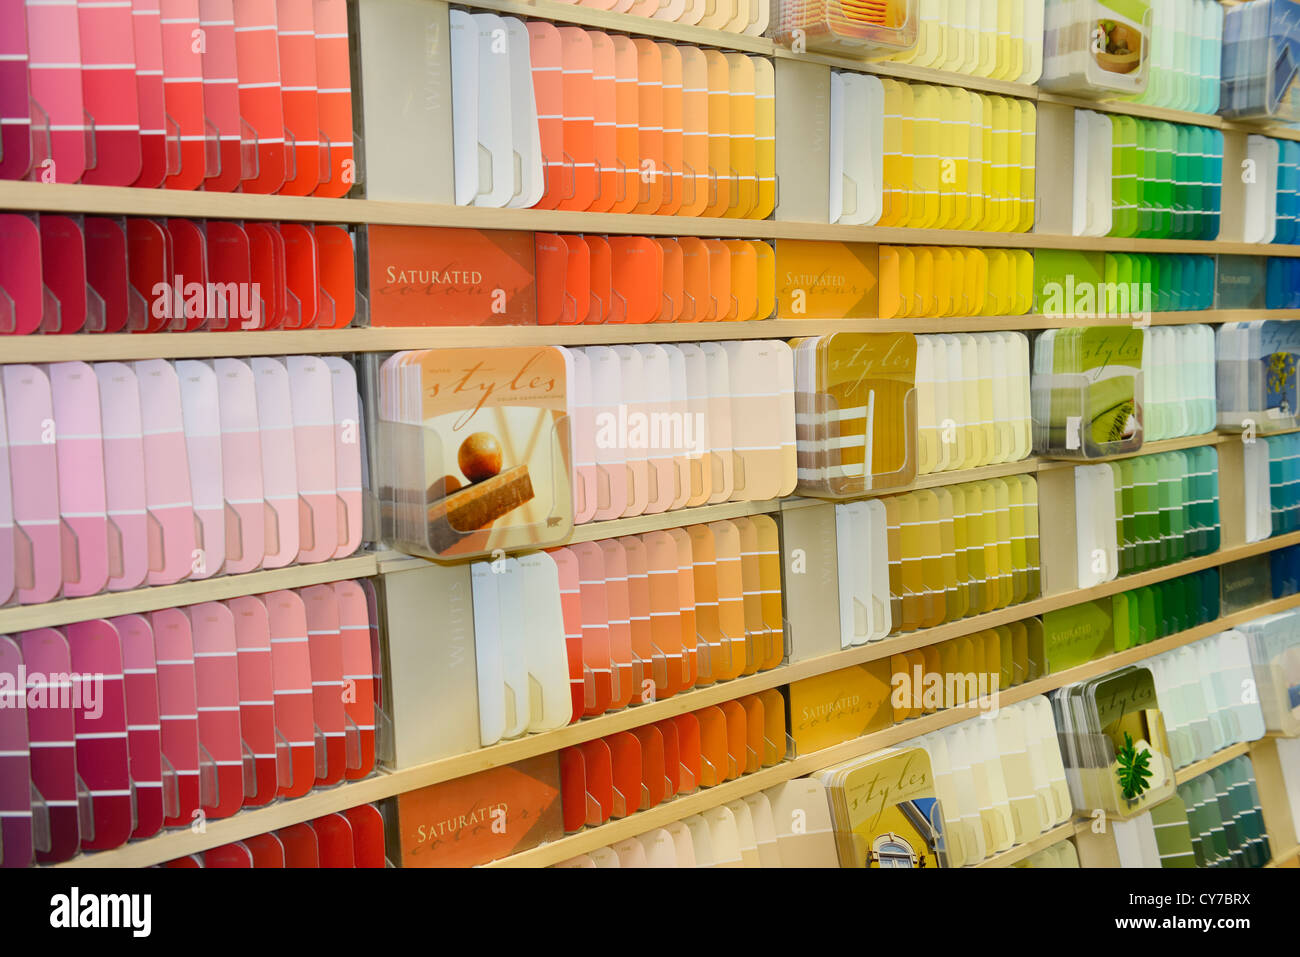 Selection of color coded paint chip samples on a display shelf in a hardware store - Stock Image